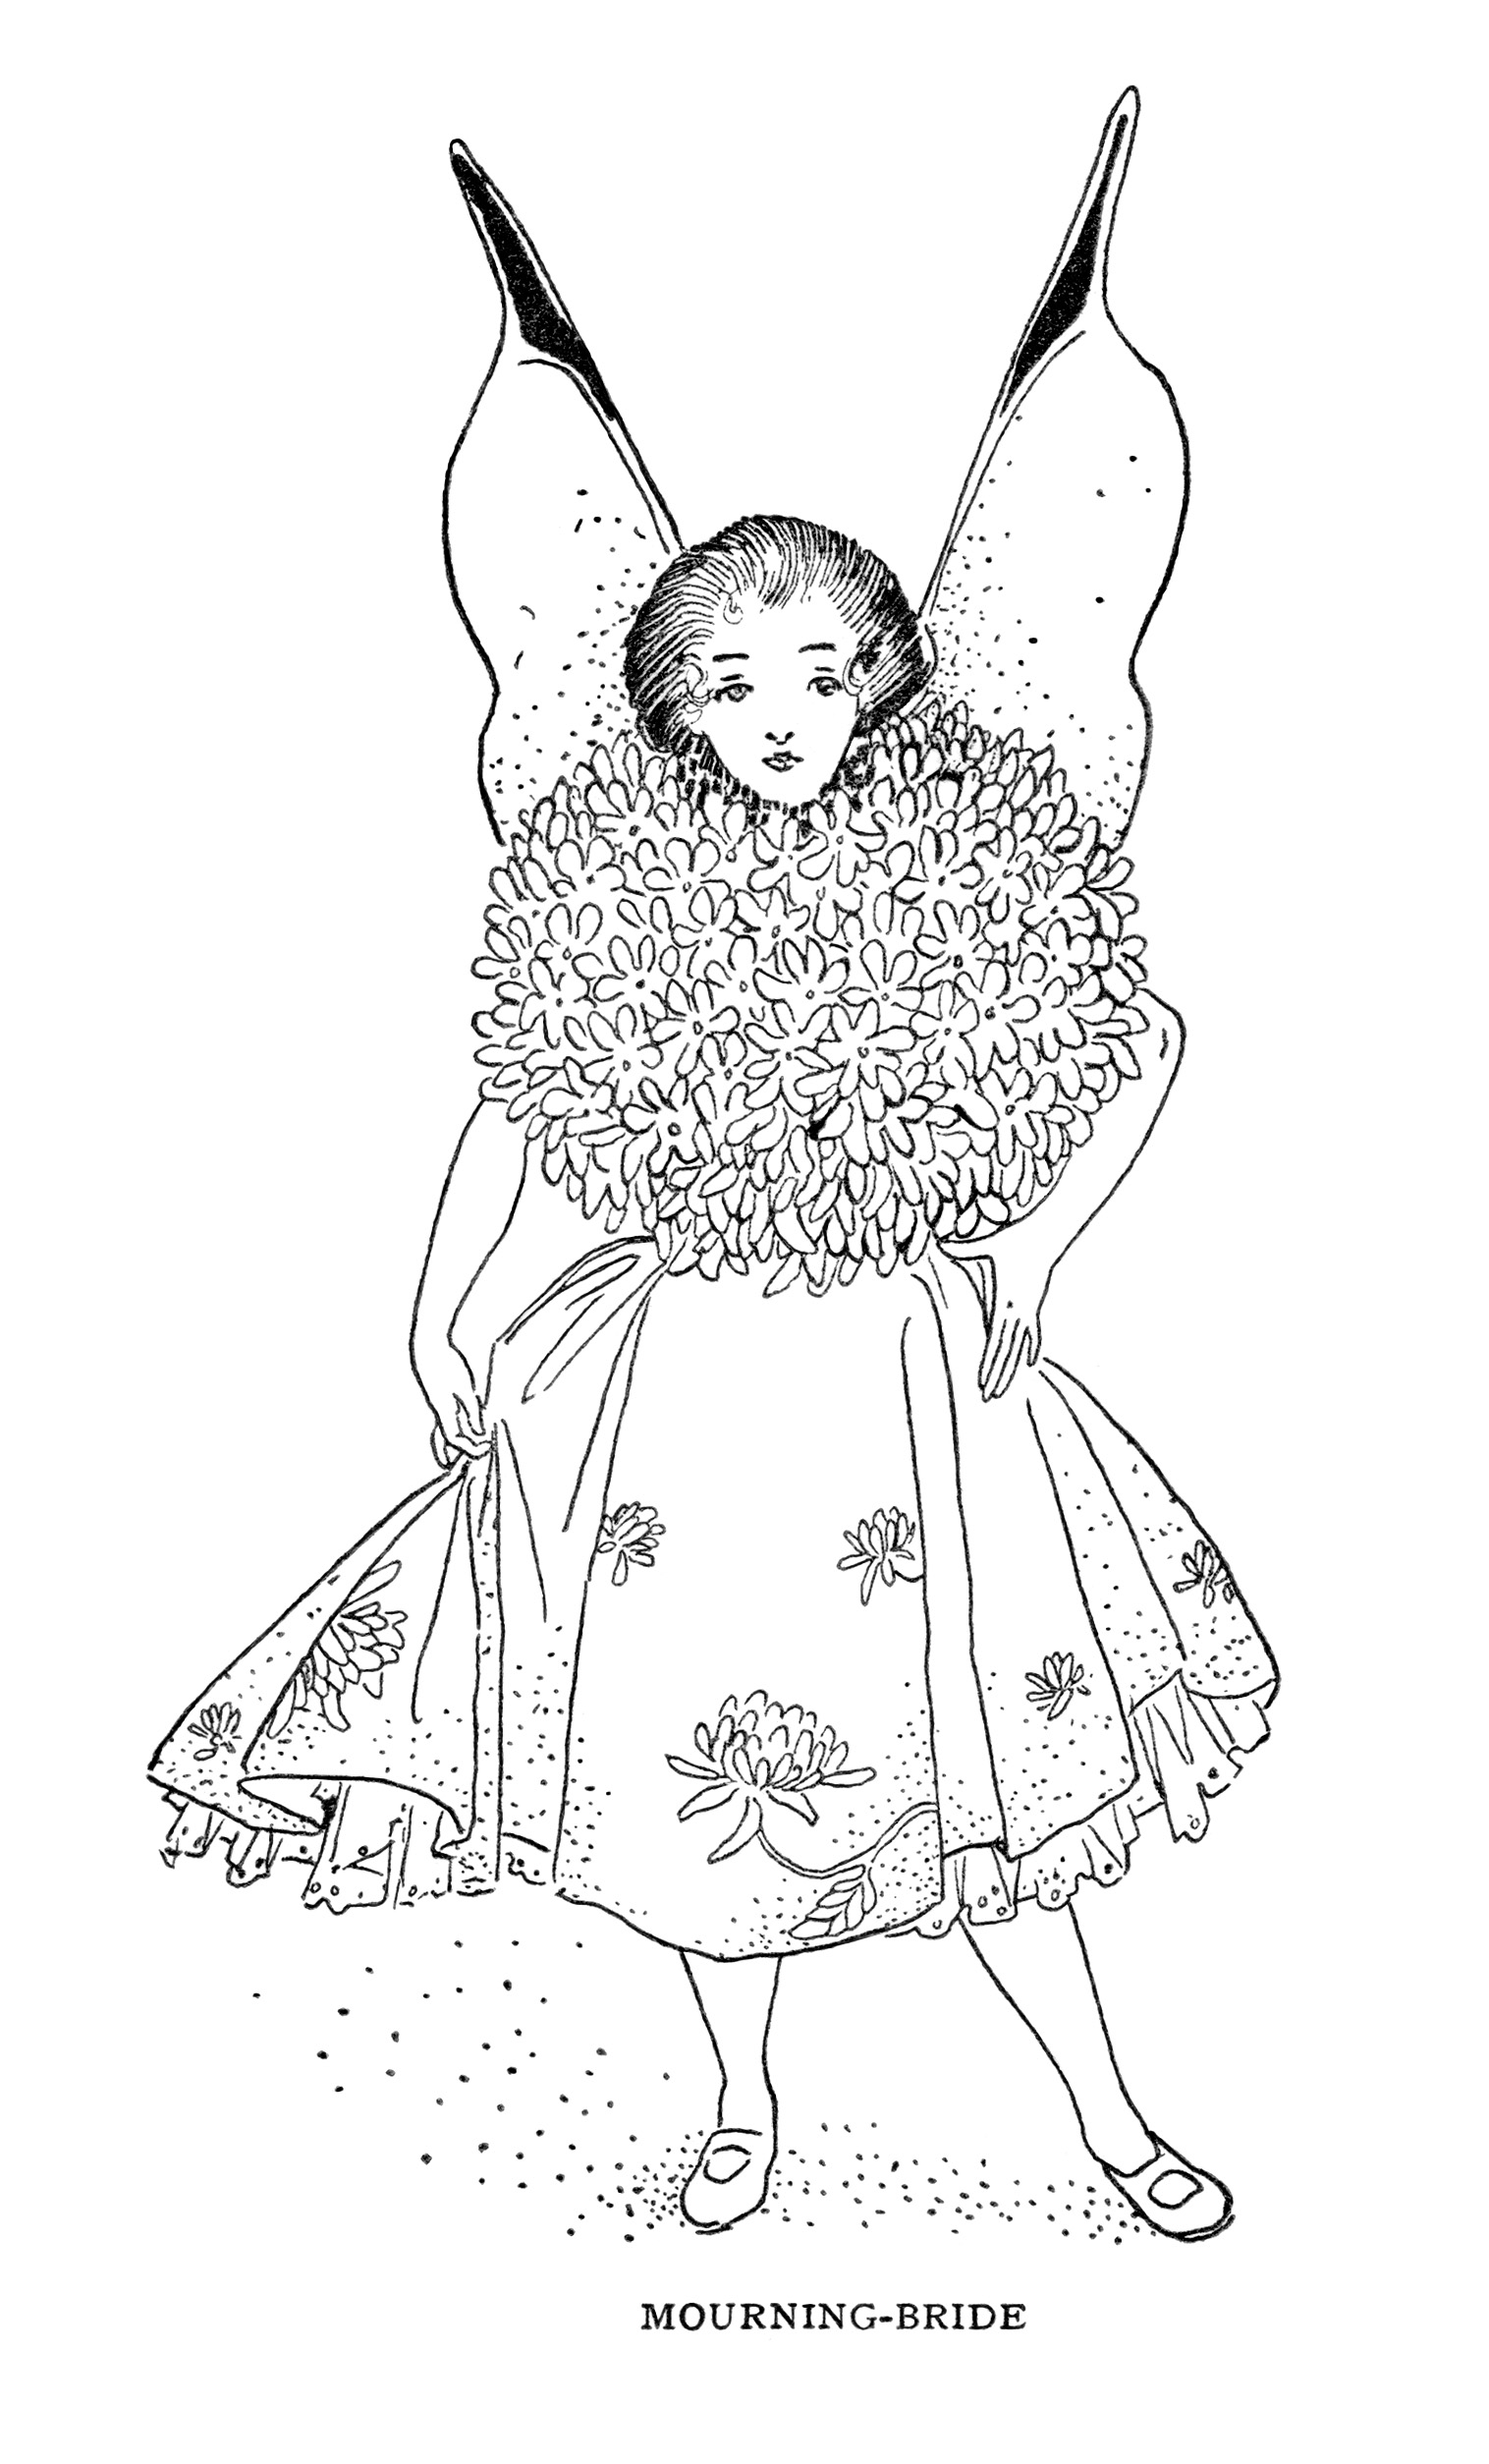 Mourning Bride Storybook Character